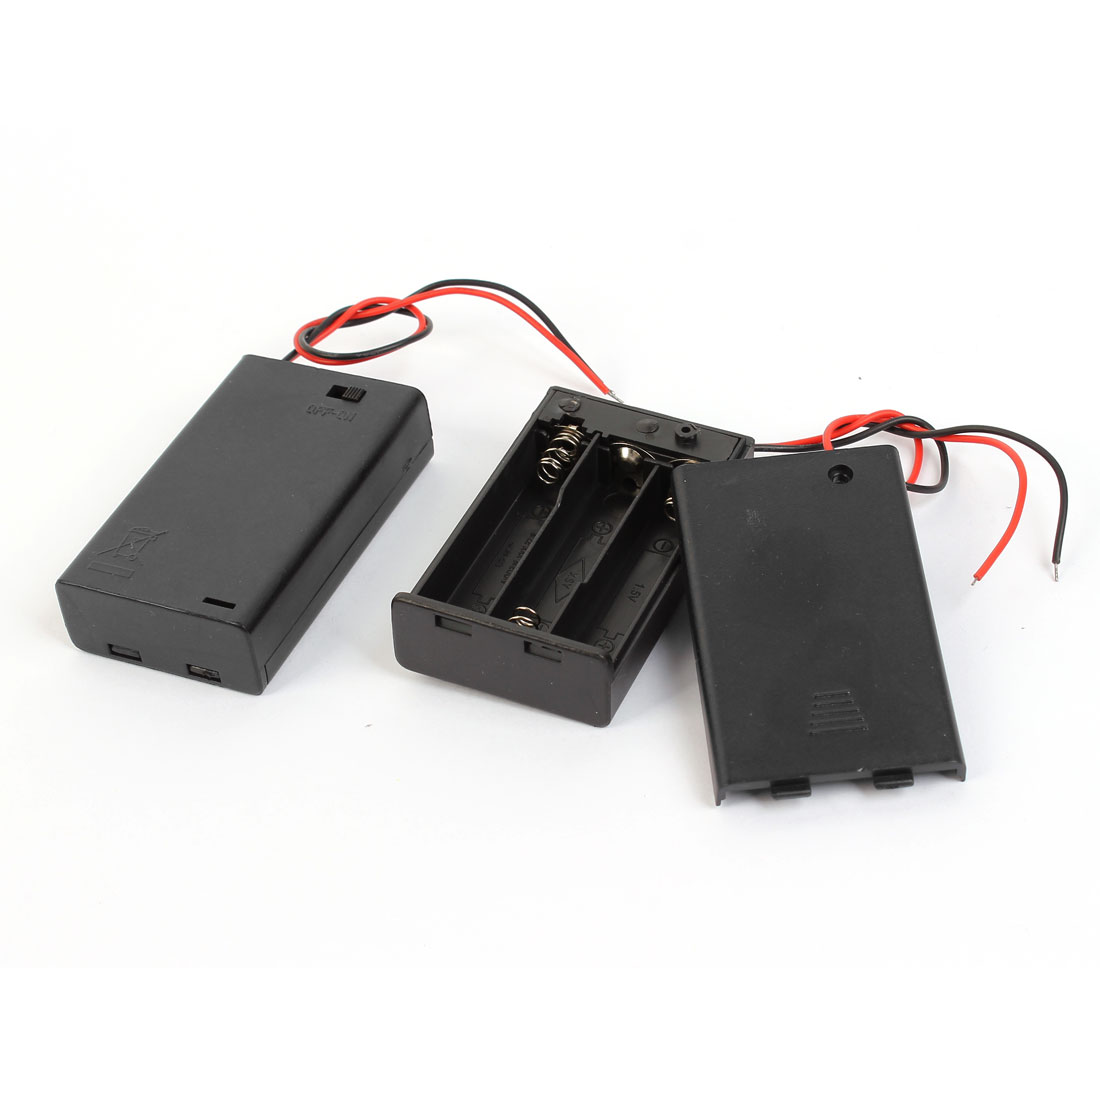 2 Pcs Wired Leads Black Battery Storage Case Box Holder 3 x 1.5V AAA